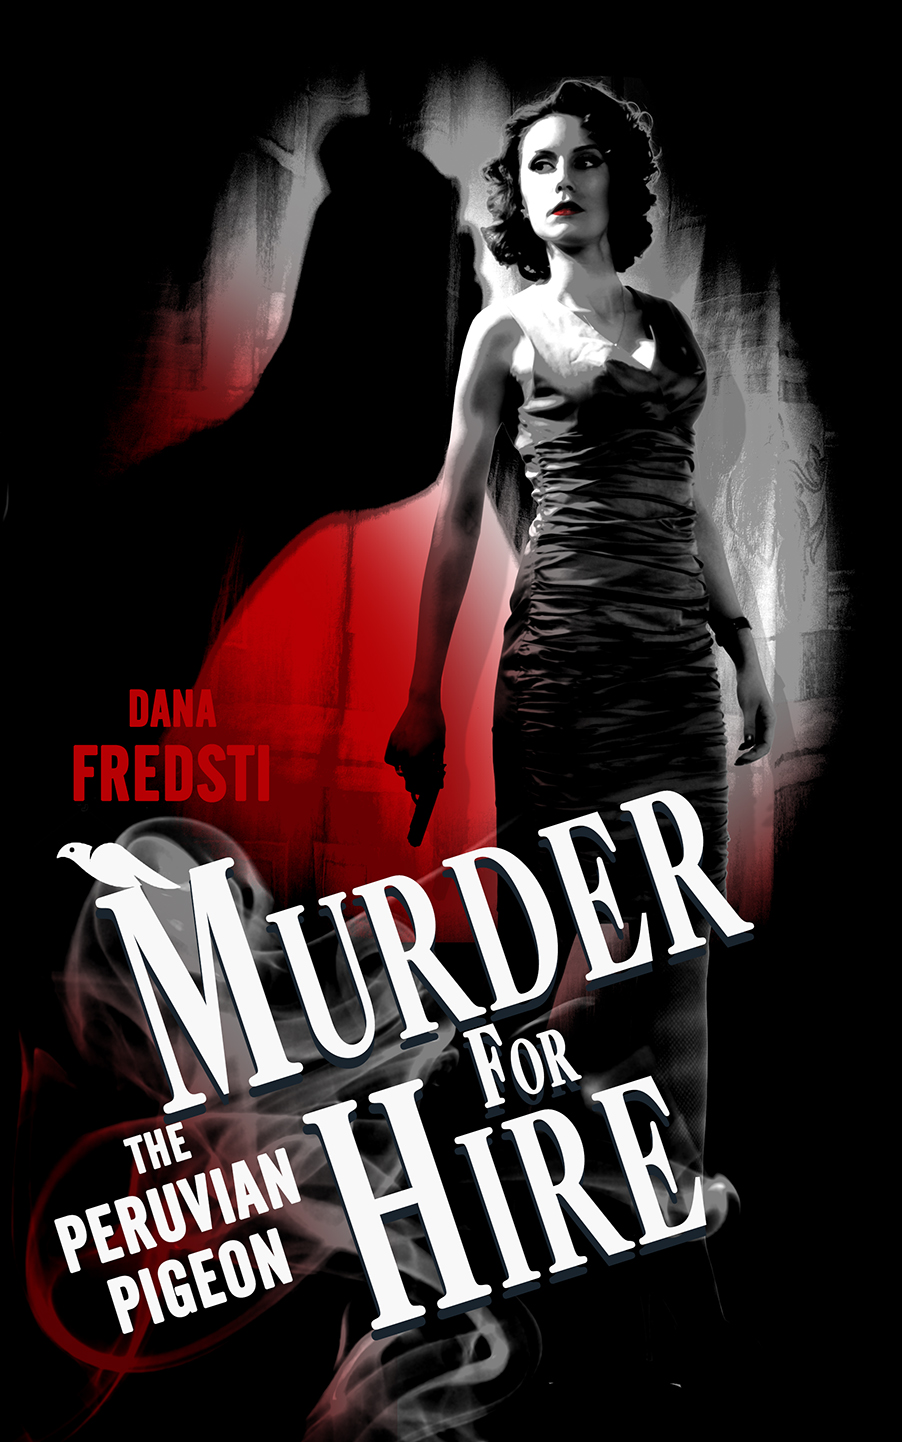 Murder for Hire : The Peruvian Pigeon by Dana Fredsti